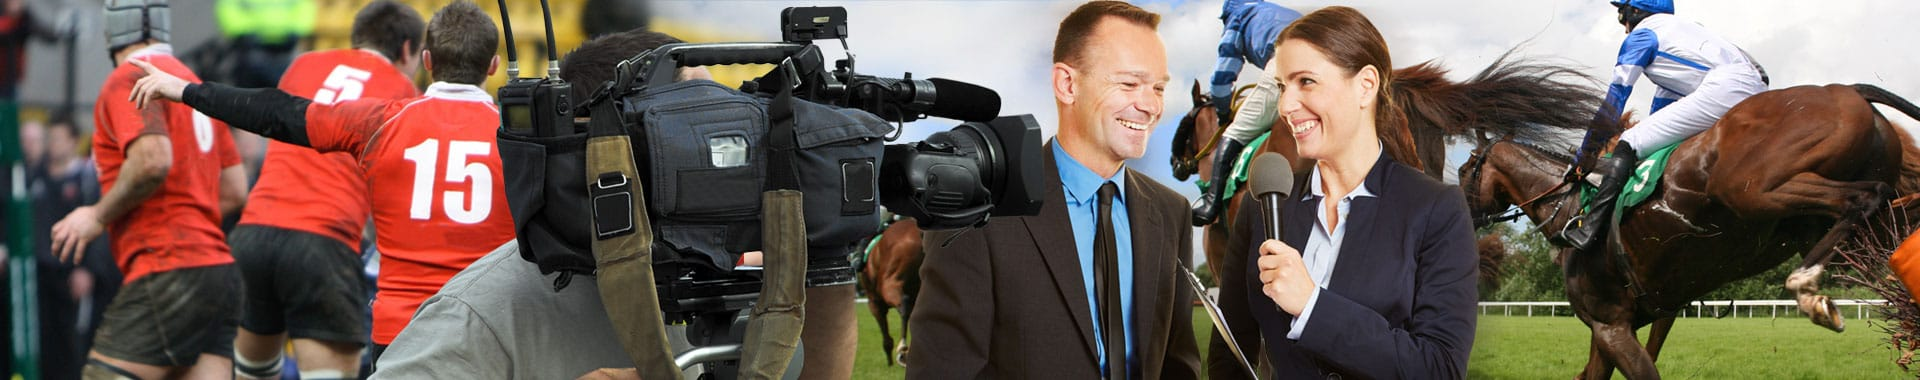 Cameraman films presenters using a wireless camera and wireless mic, at a number of sporting events